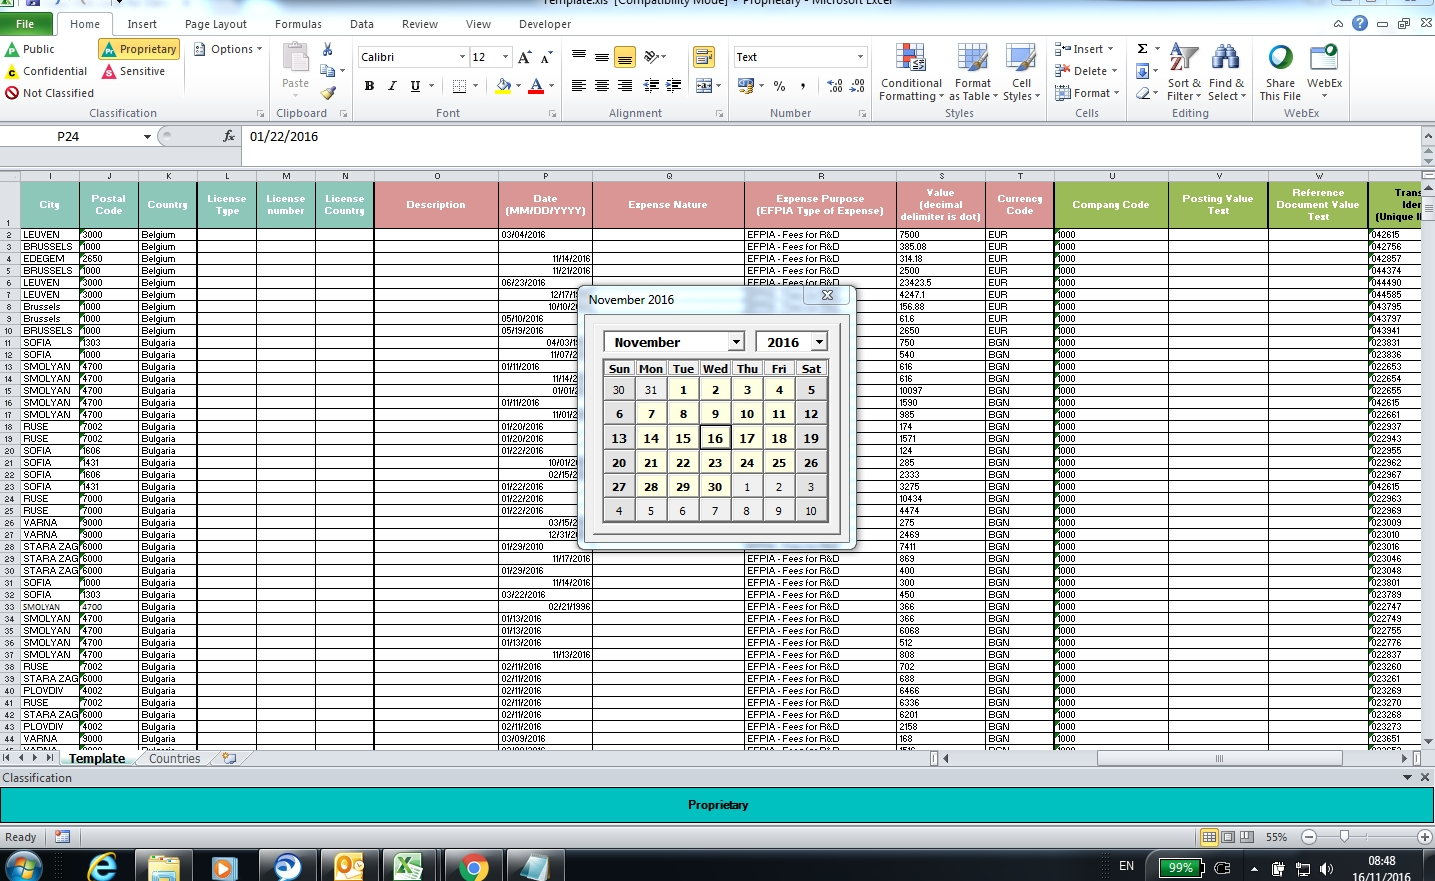 Copy Vba Code For Date Picker From Original Sheet To Copied